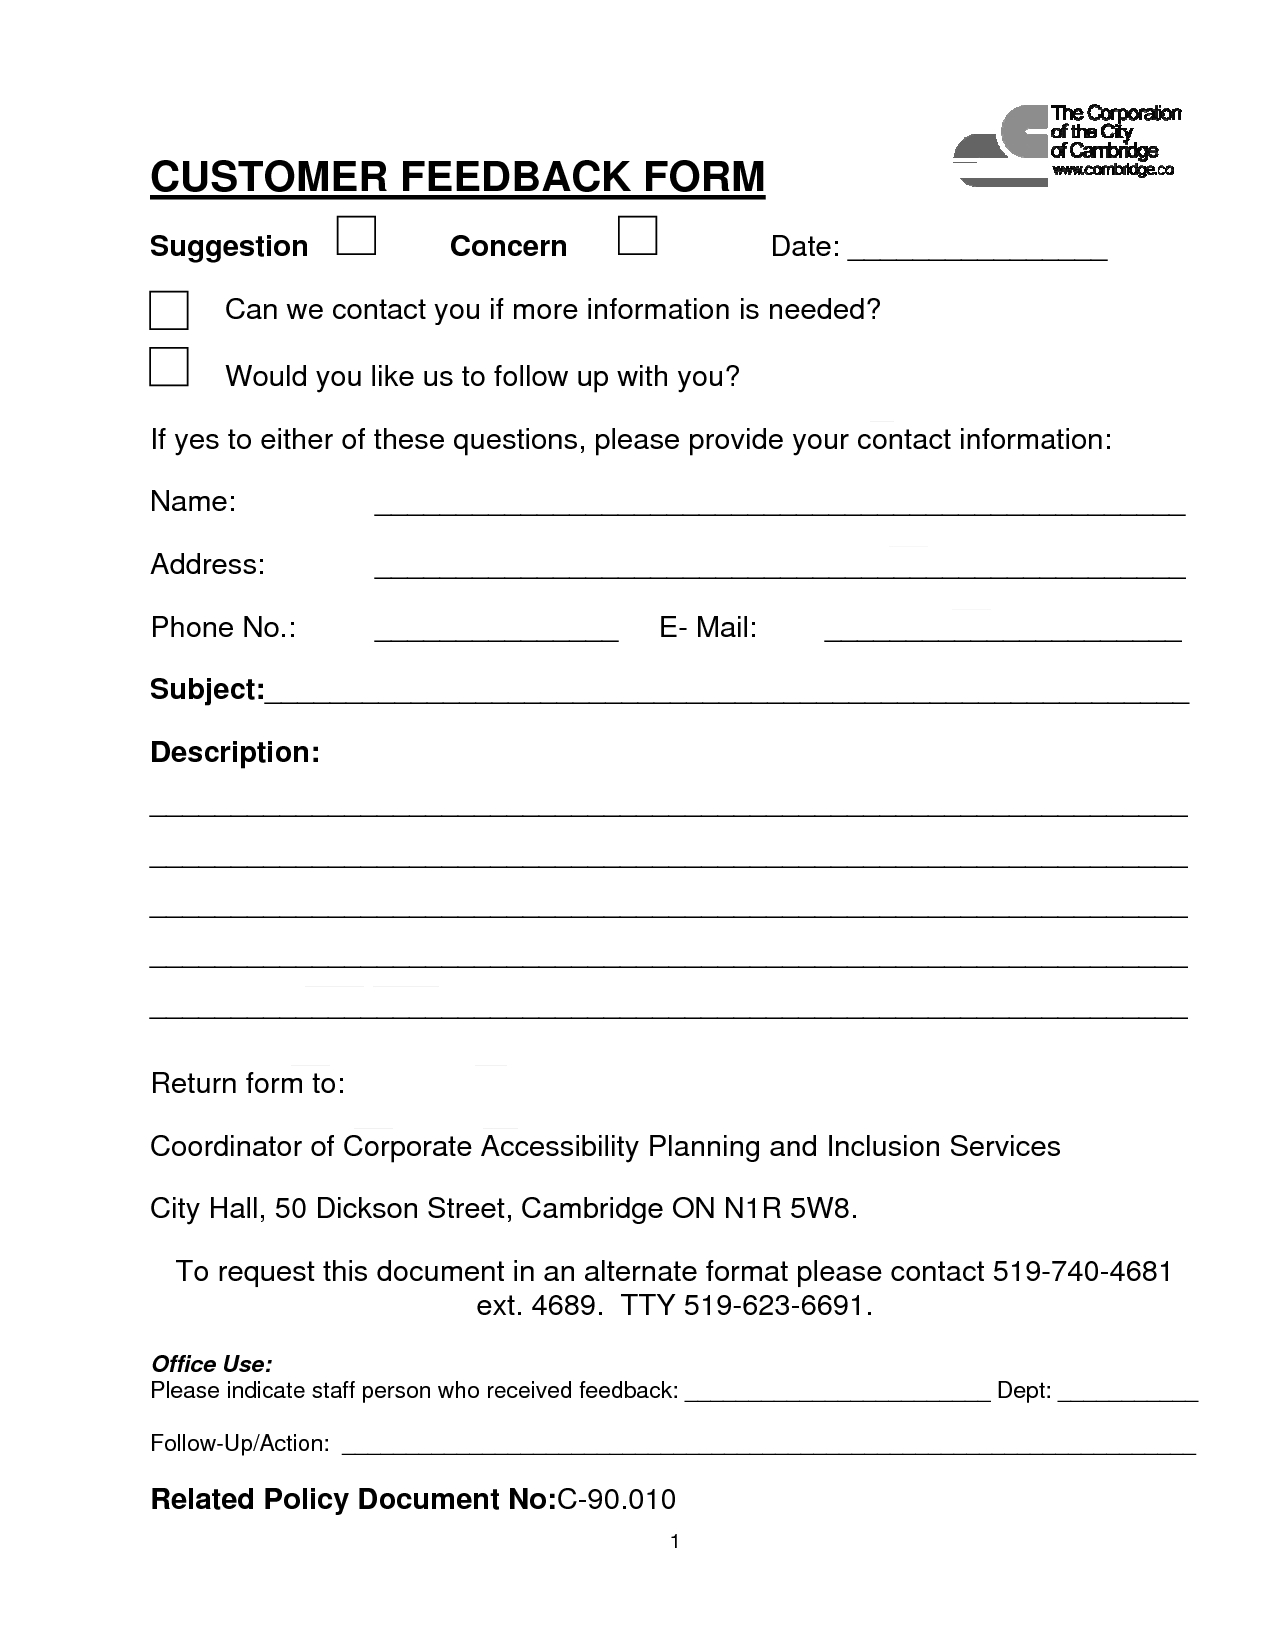 Customer Contact Form  Customer Feedback Form Pdf Download Was Intended For Word Employee Suggestion Form Template